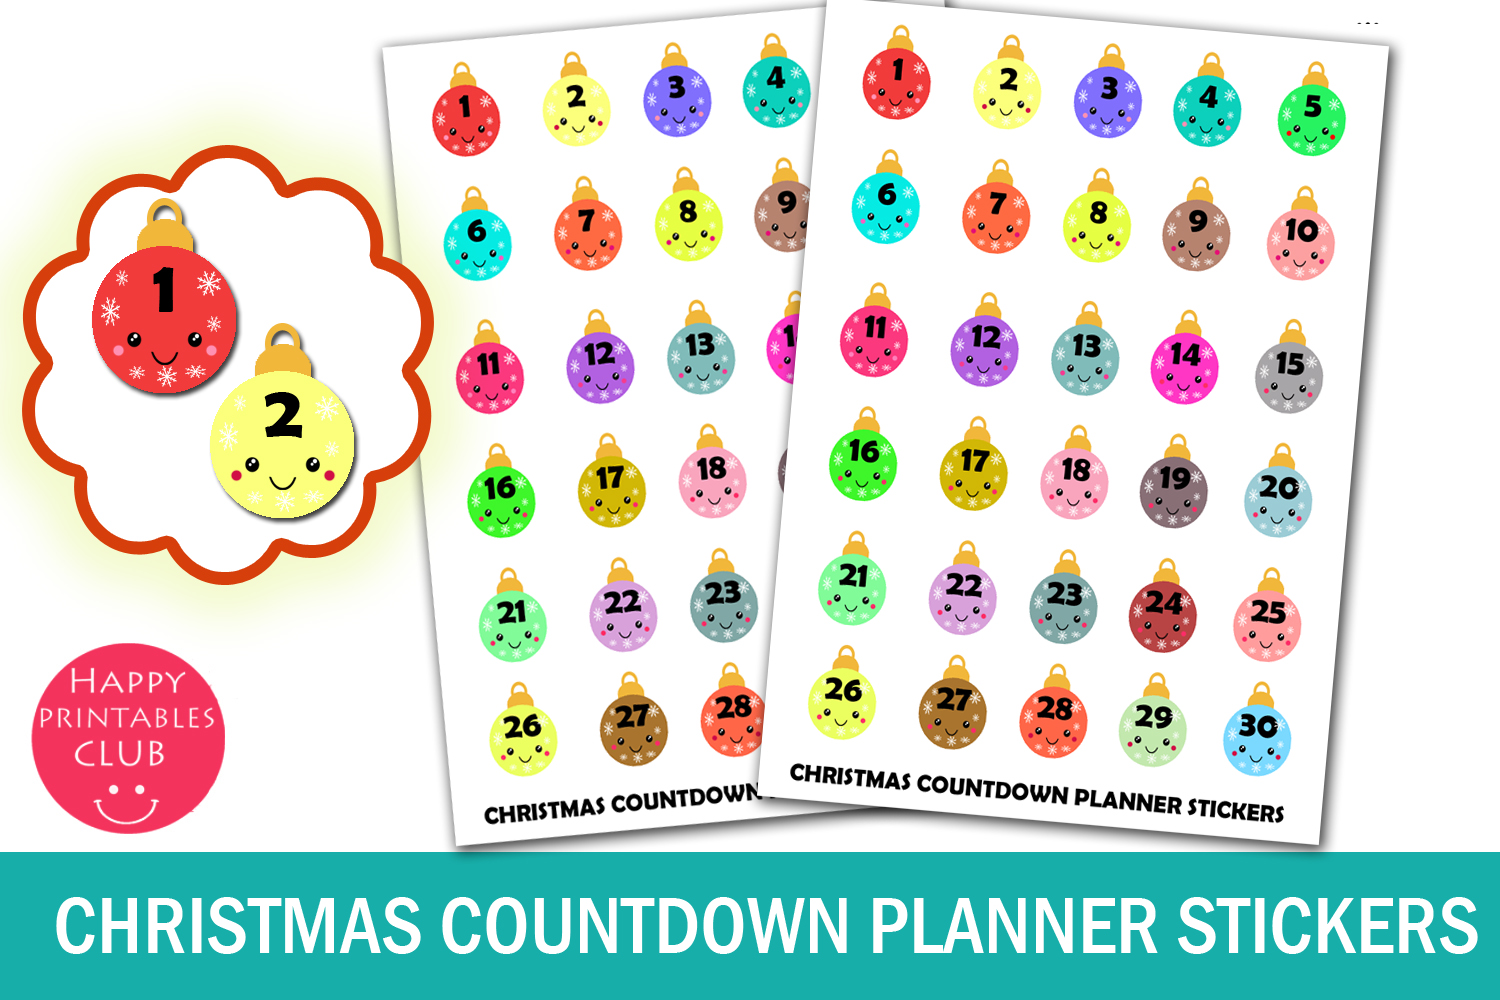 Download Free Christmas Countdown Planner Stickers Graphic By Happy Printables for Cricut Explore, Silhouette and other cutting machines.